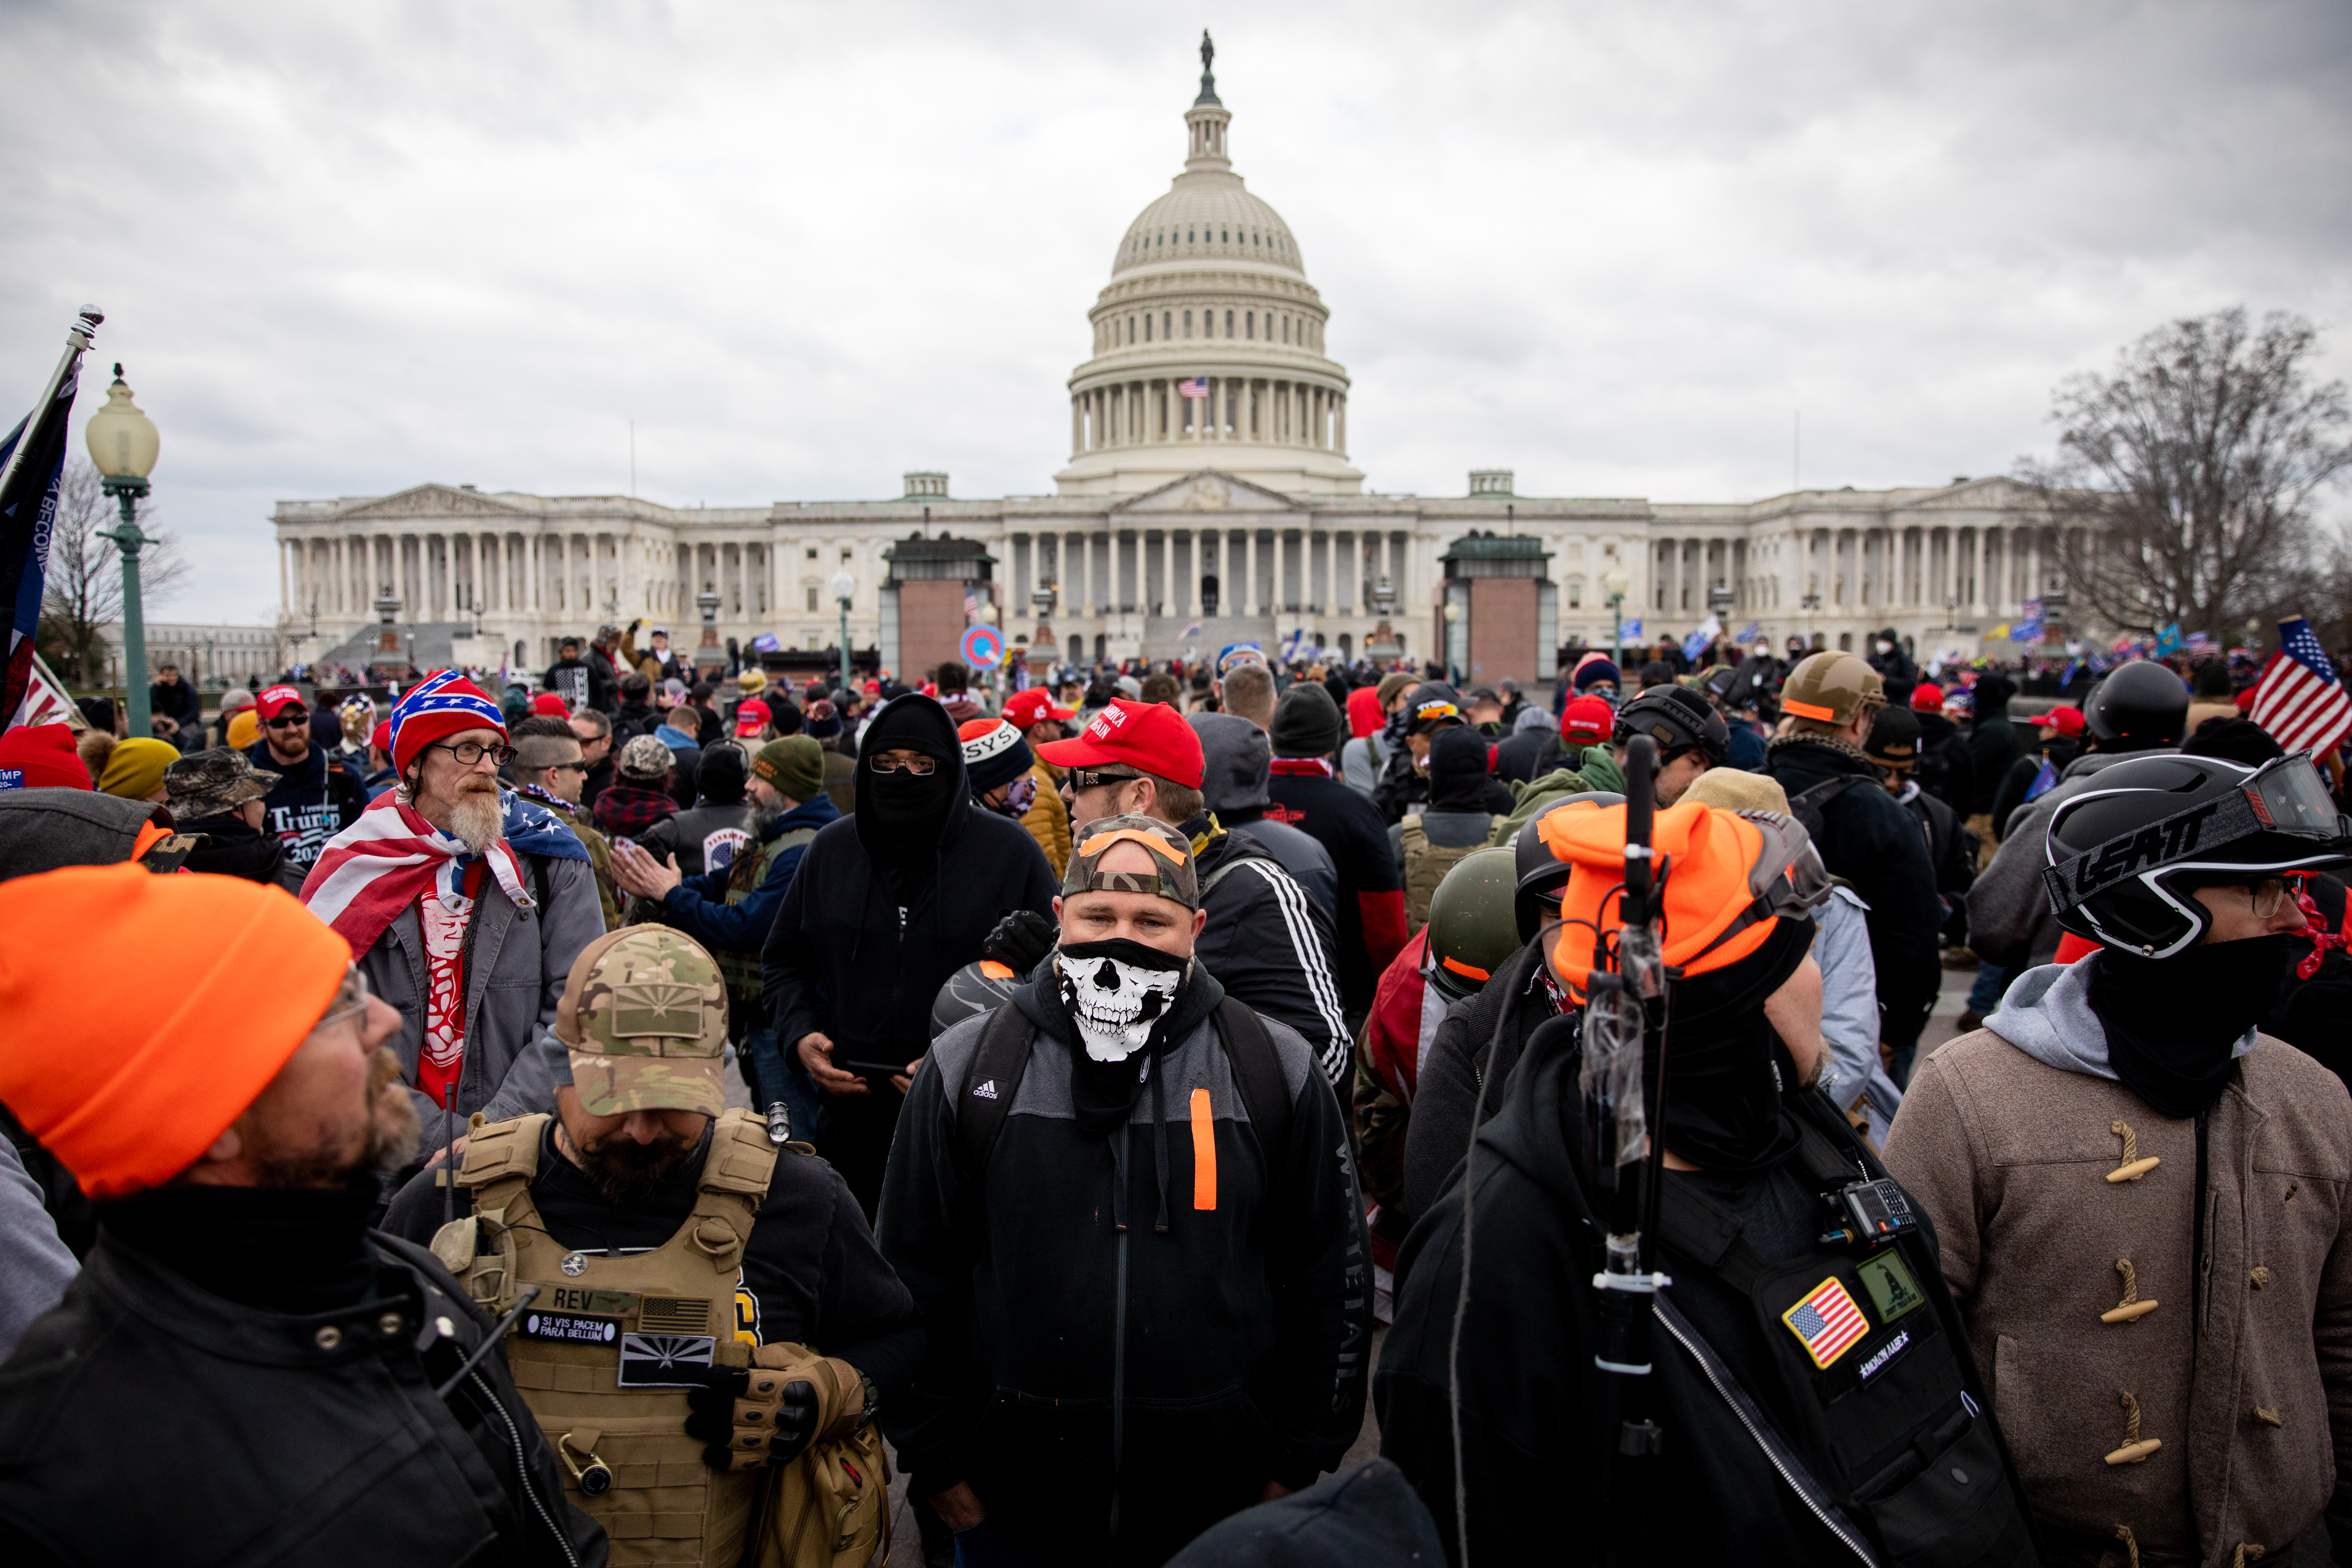 U.S. Capitol Protesters, Egged on by Trump, Are Part of a Long History of White Supremacists Hearing Politicians' Words as Encouragement